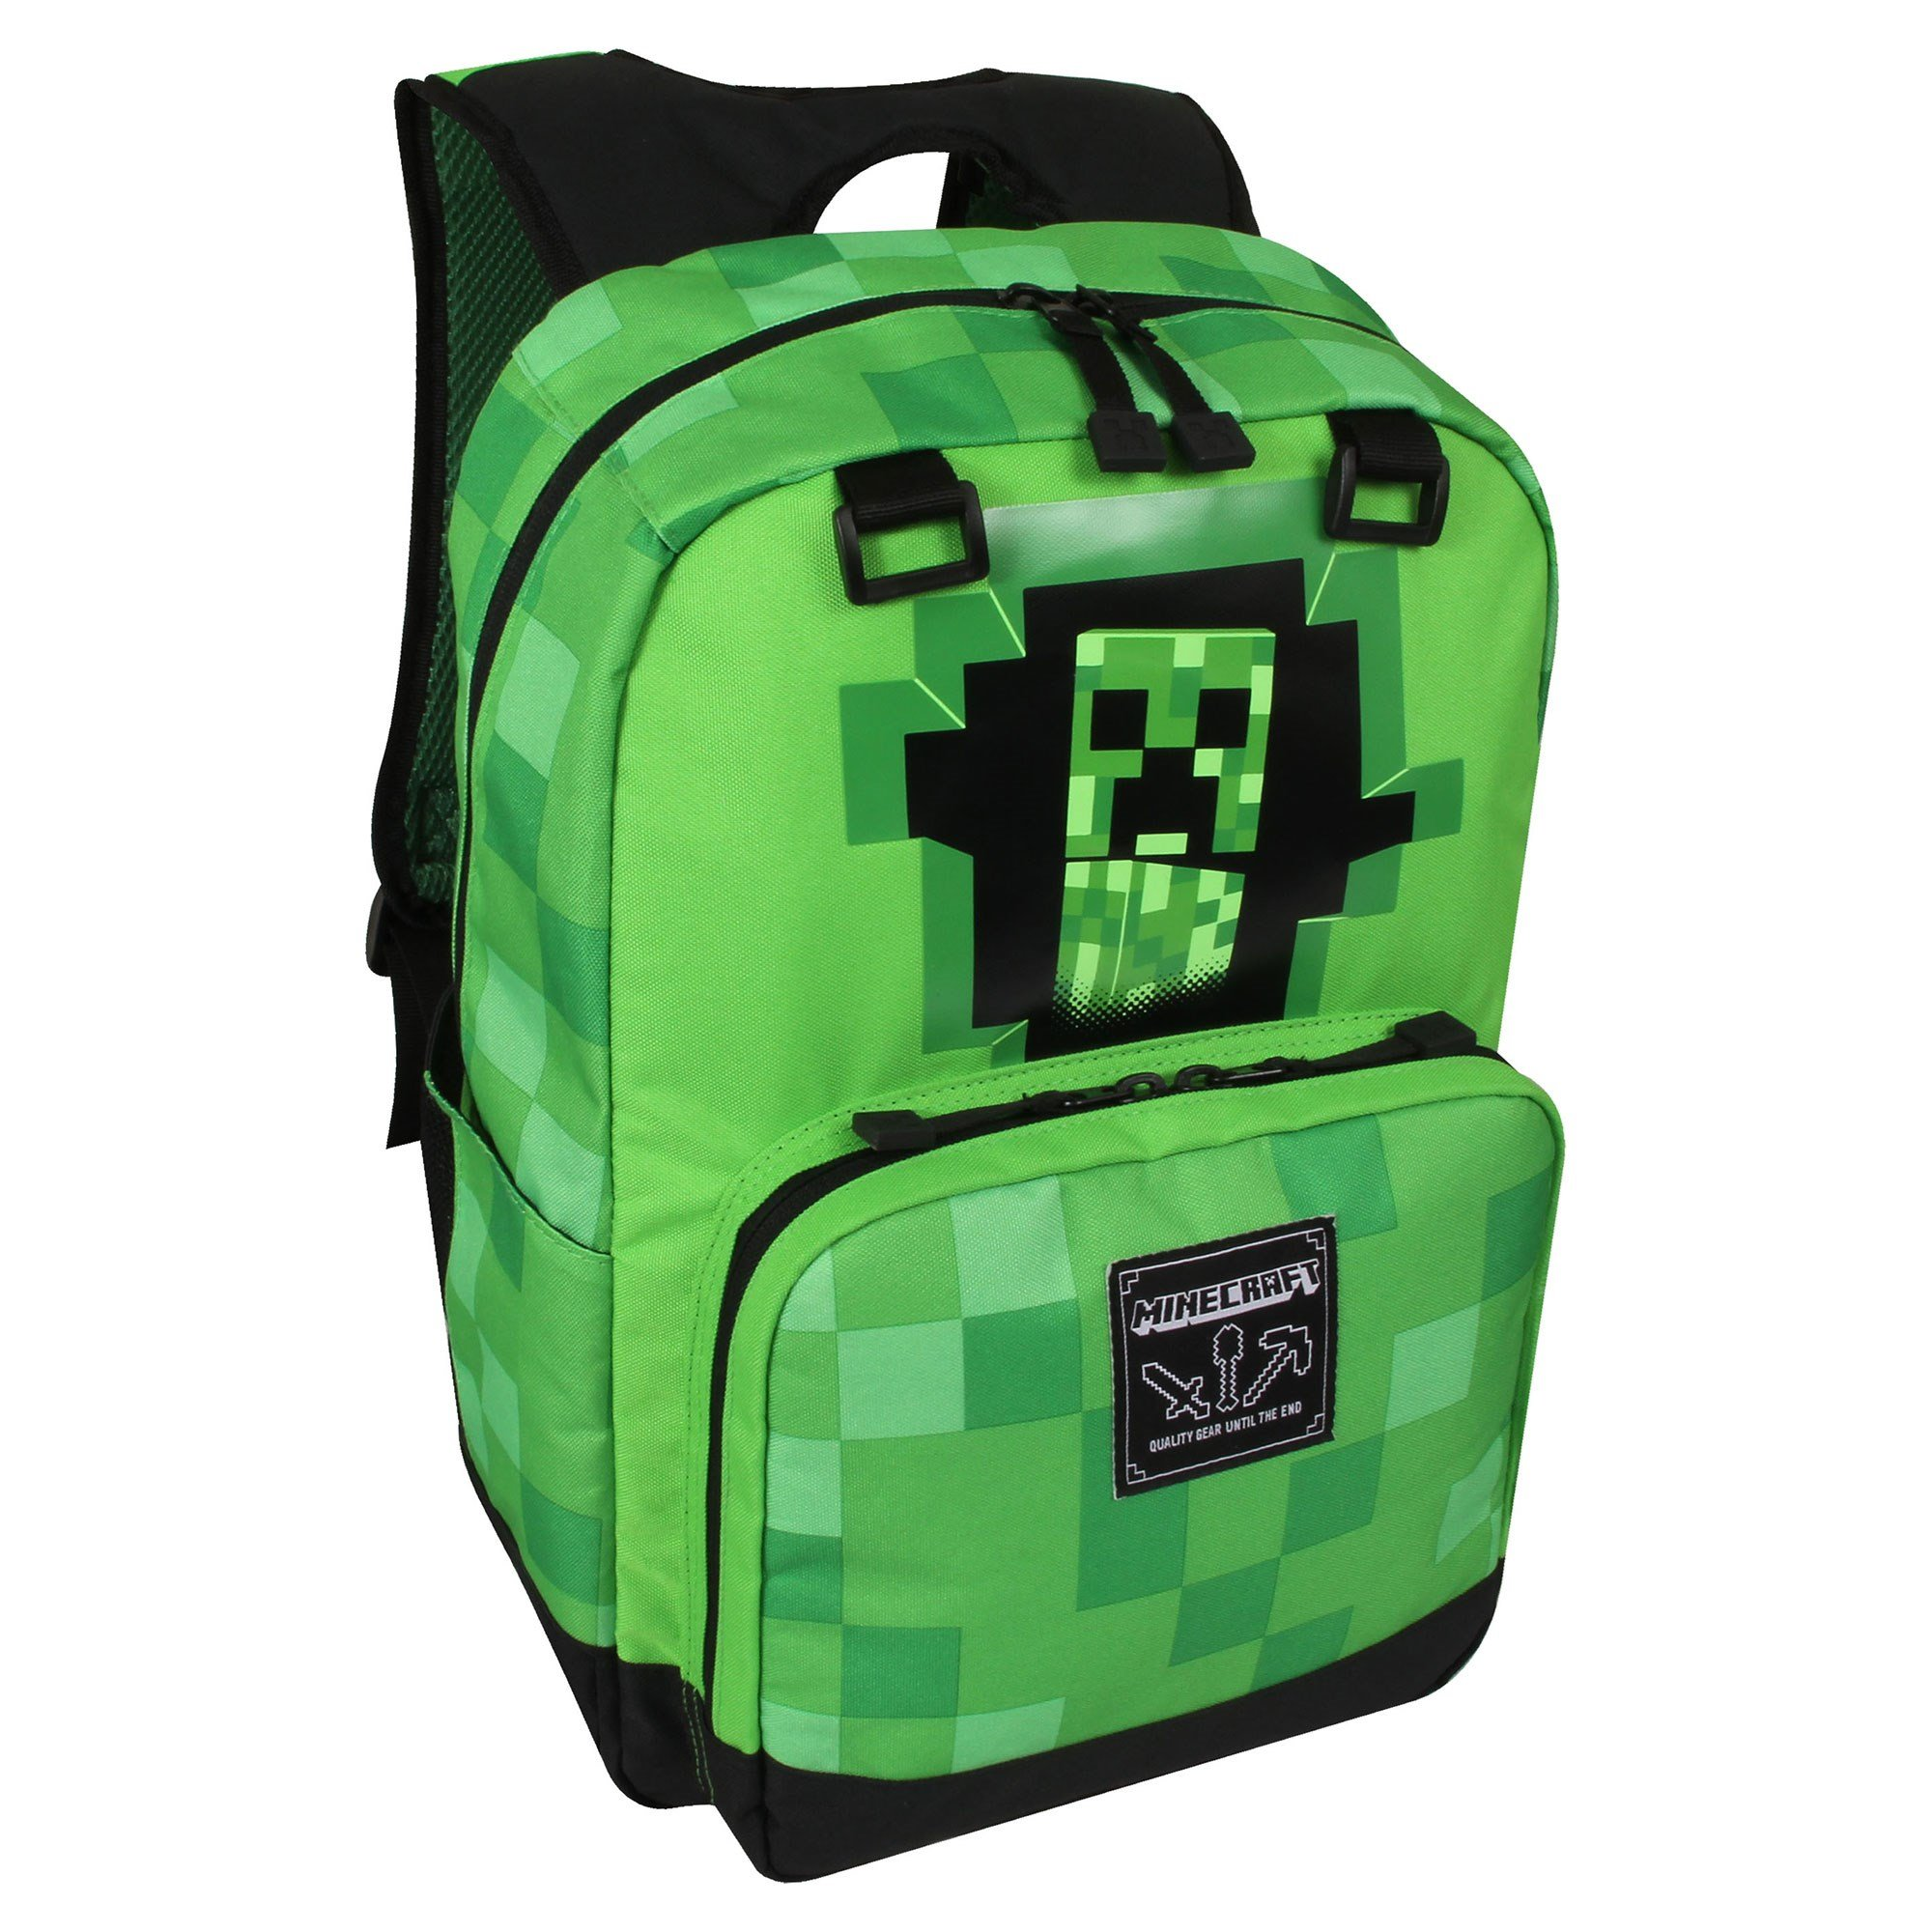 JINX Minecraft Creepy Creeper Kids School Backpack, Green, 17''